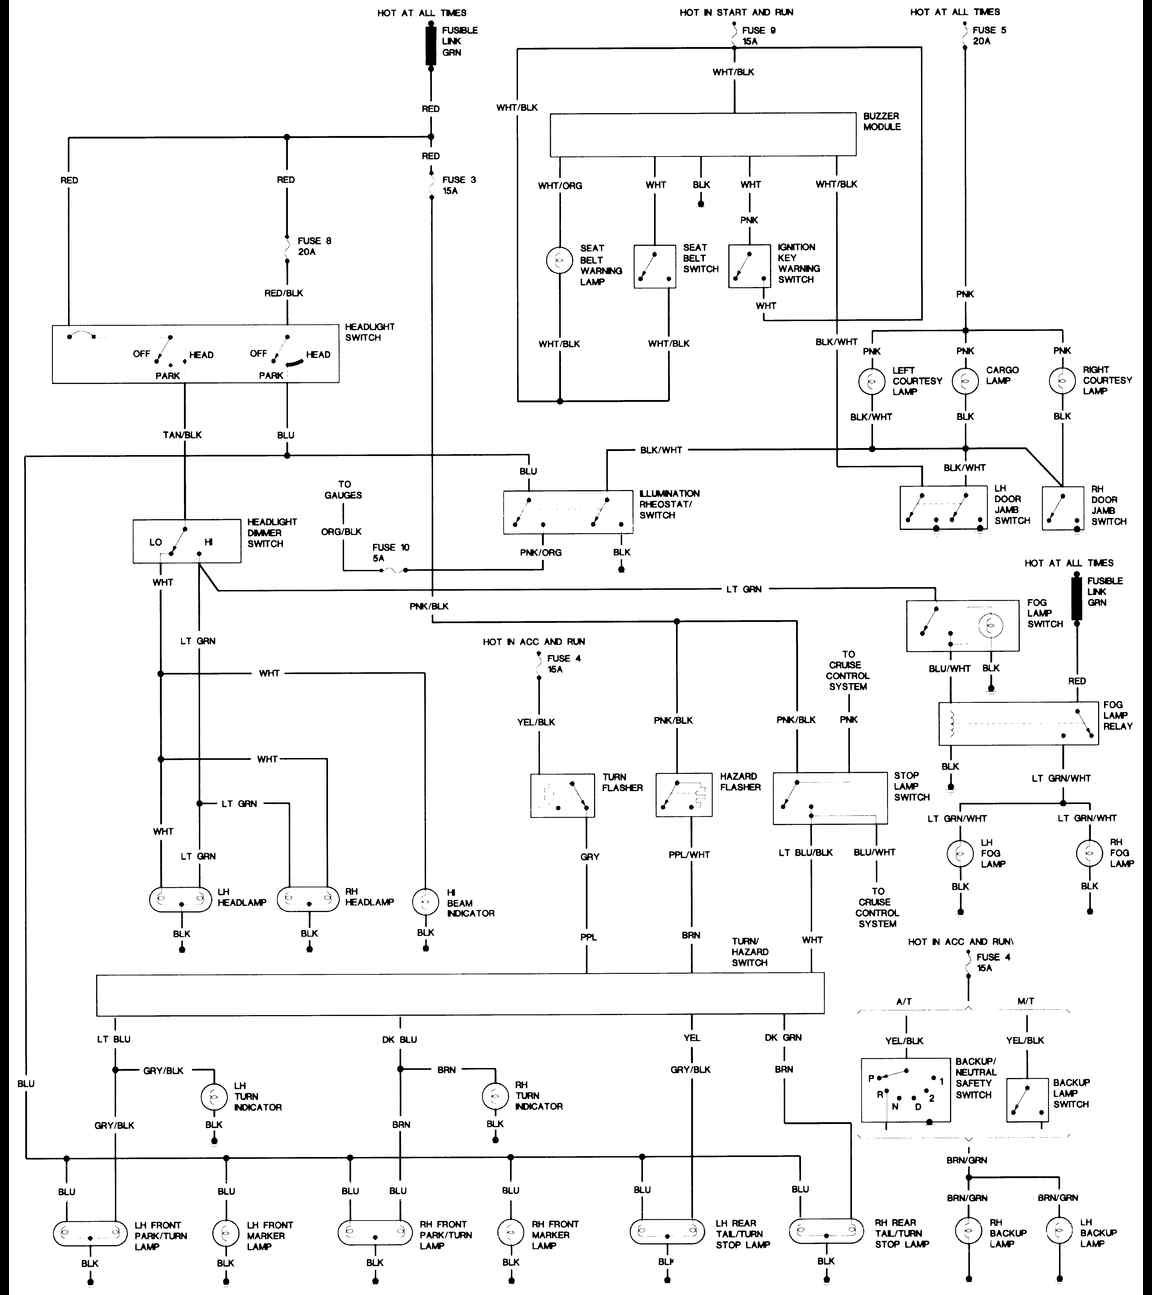 jeep jk wiring diagram jeep image wiring diagram jeep wrangler jk wiring diagram jeep get image about wiring on jeep jk wiring diagram